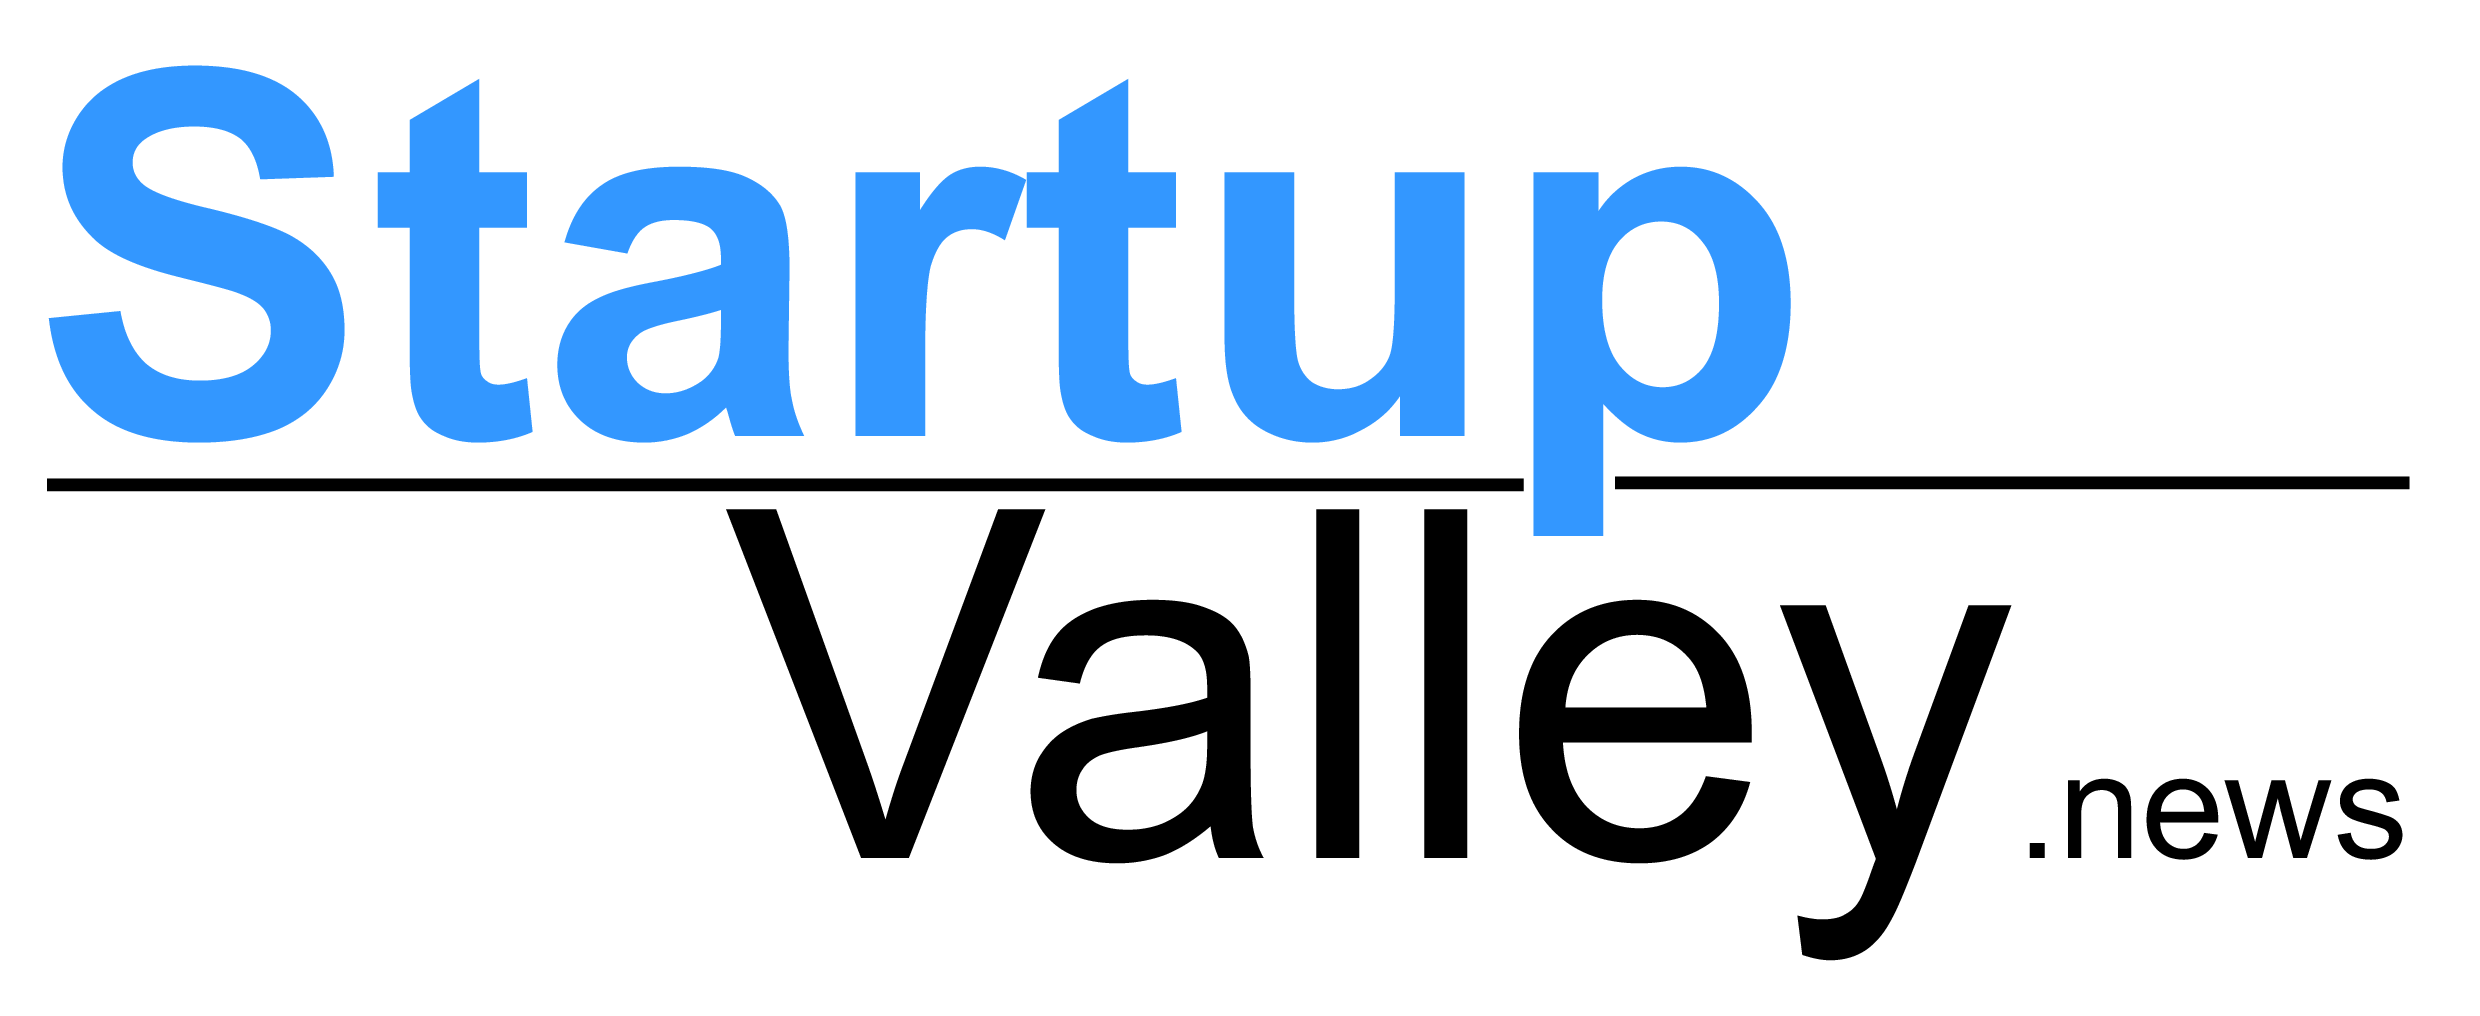 StartupValley.news logo